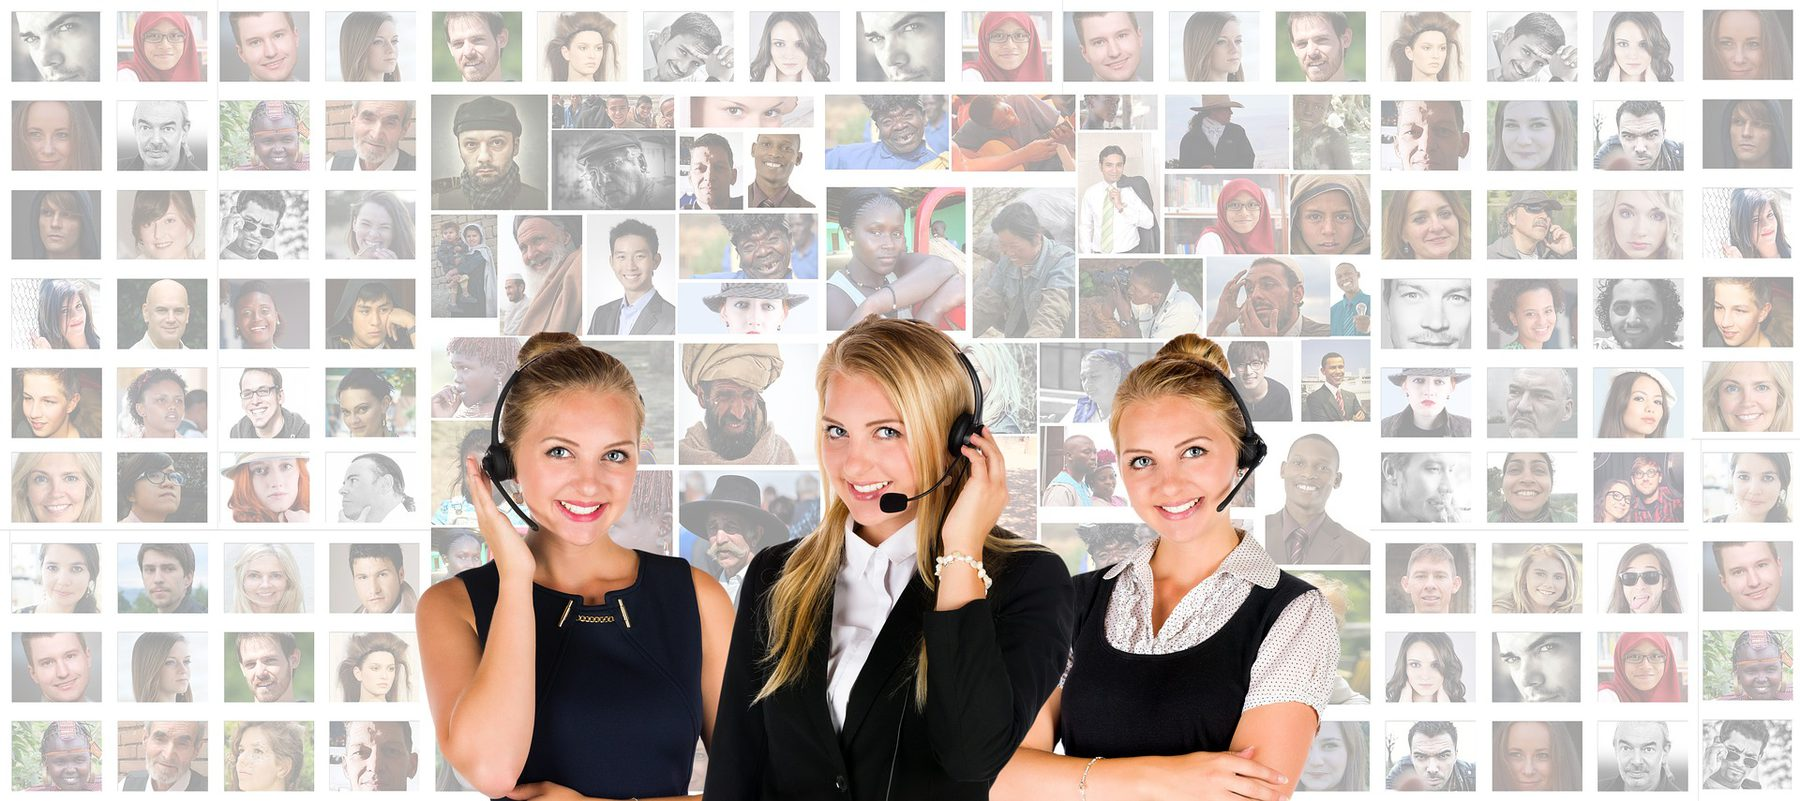 Customer Service (Sector Header: People with Telephone Headsets)